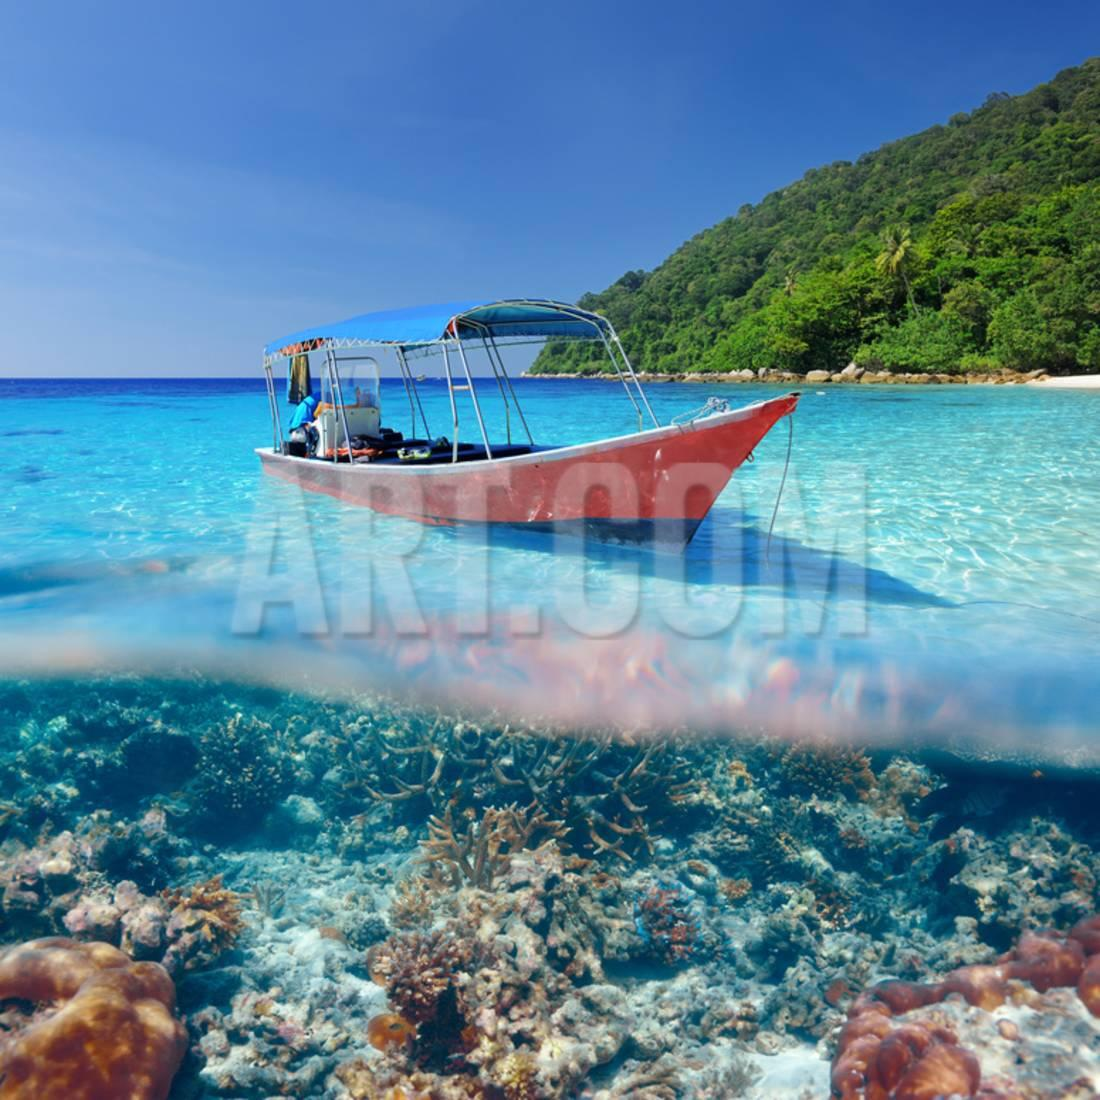 Beautiful Beach and Motor Boat with Coral Reef Bottom Underwater and above Water Split View Print Wall Art By haveseen